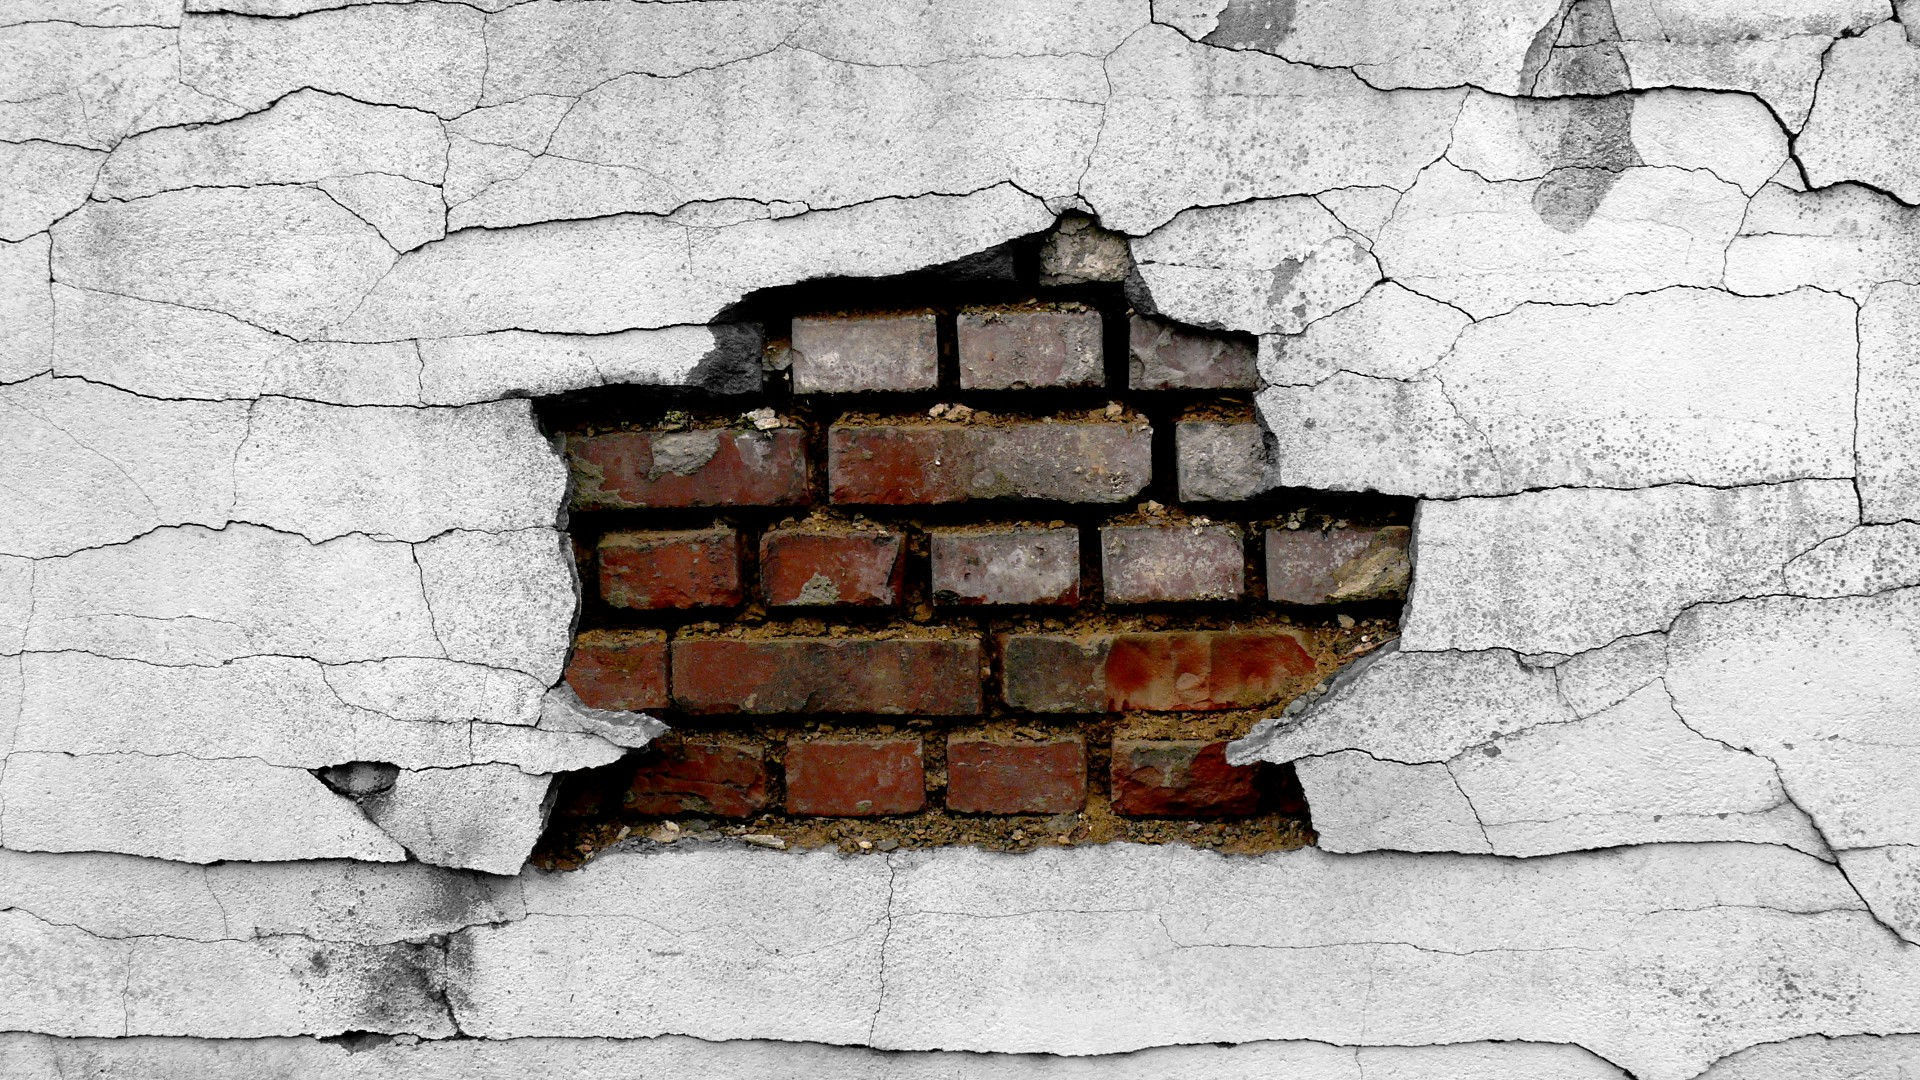 Cracked brick wall drawing brick wall - Wall Cracked Broken Brick Wall Wallpaper 1920x1080 48640 Wallpaperup